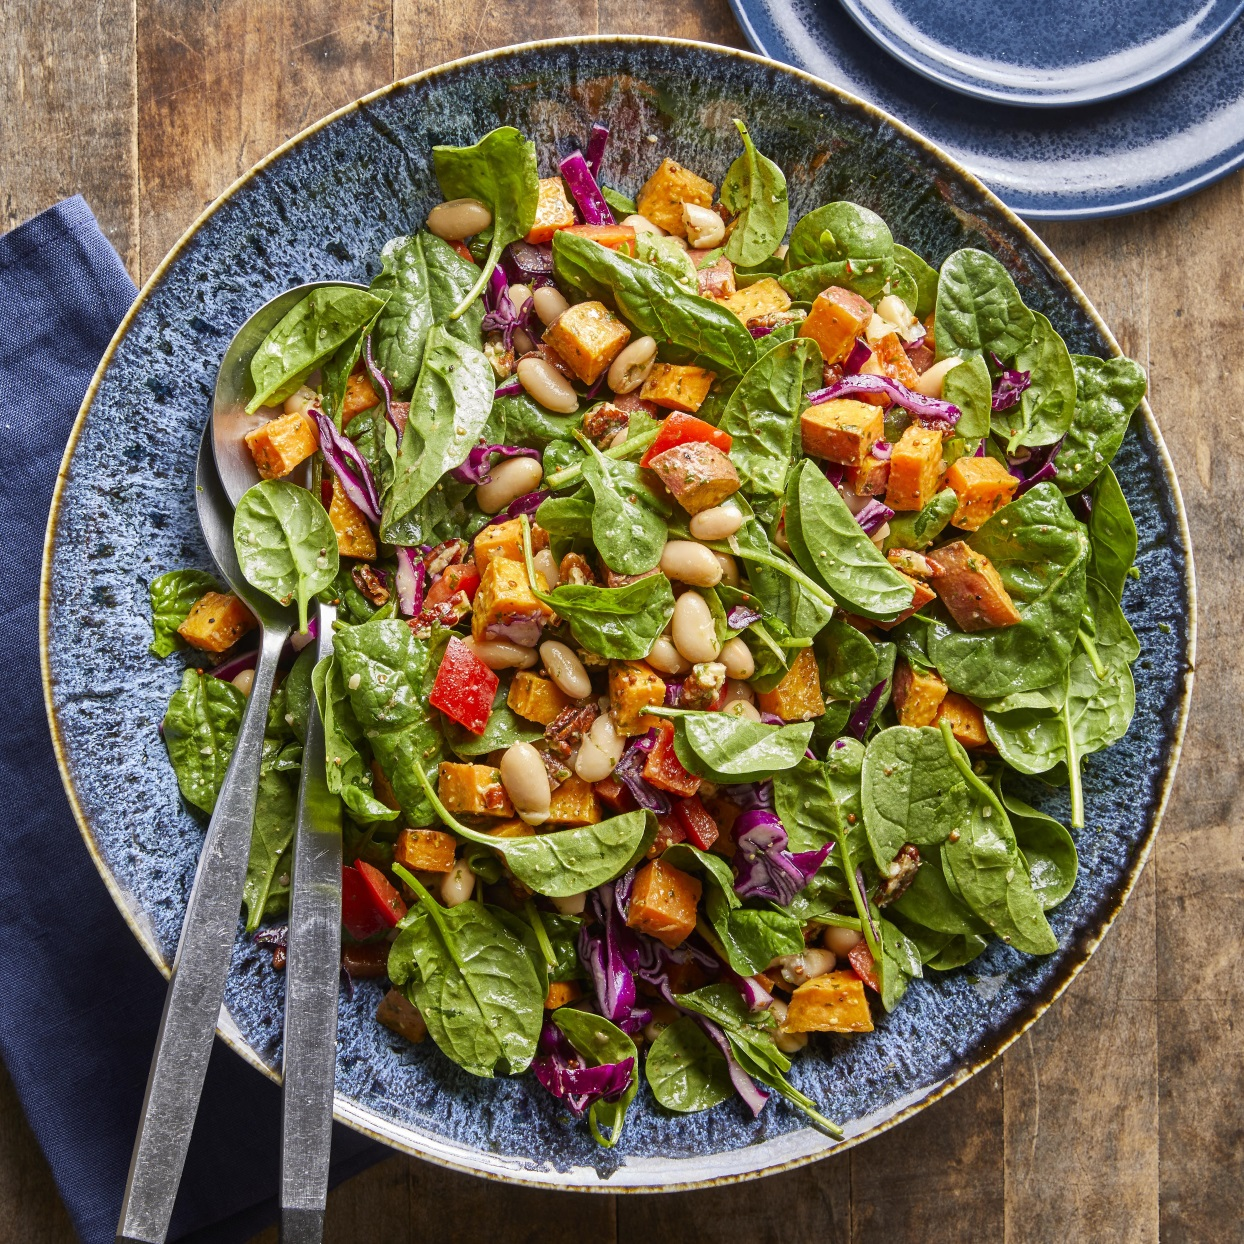 Spinach Salad with Roasted Sweet Potatoes, White Beans & Basil